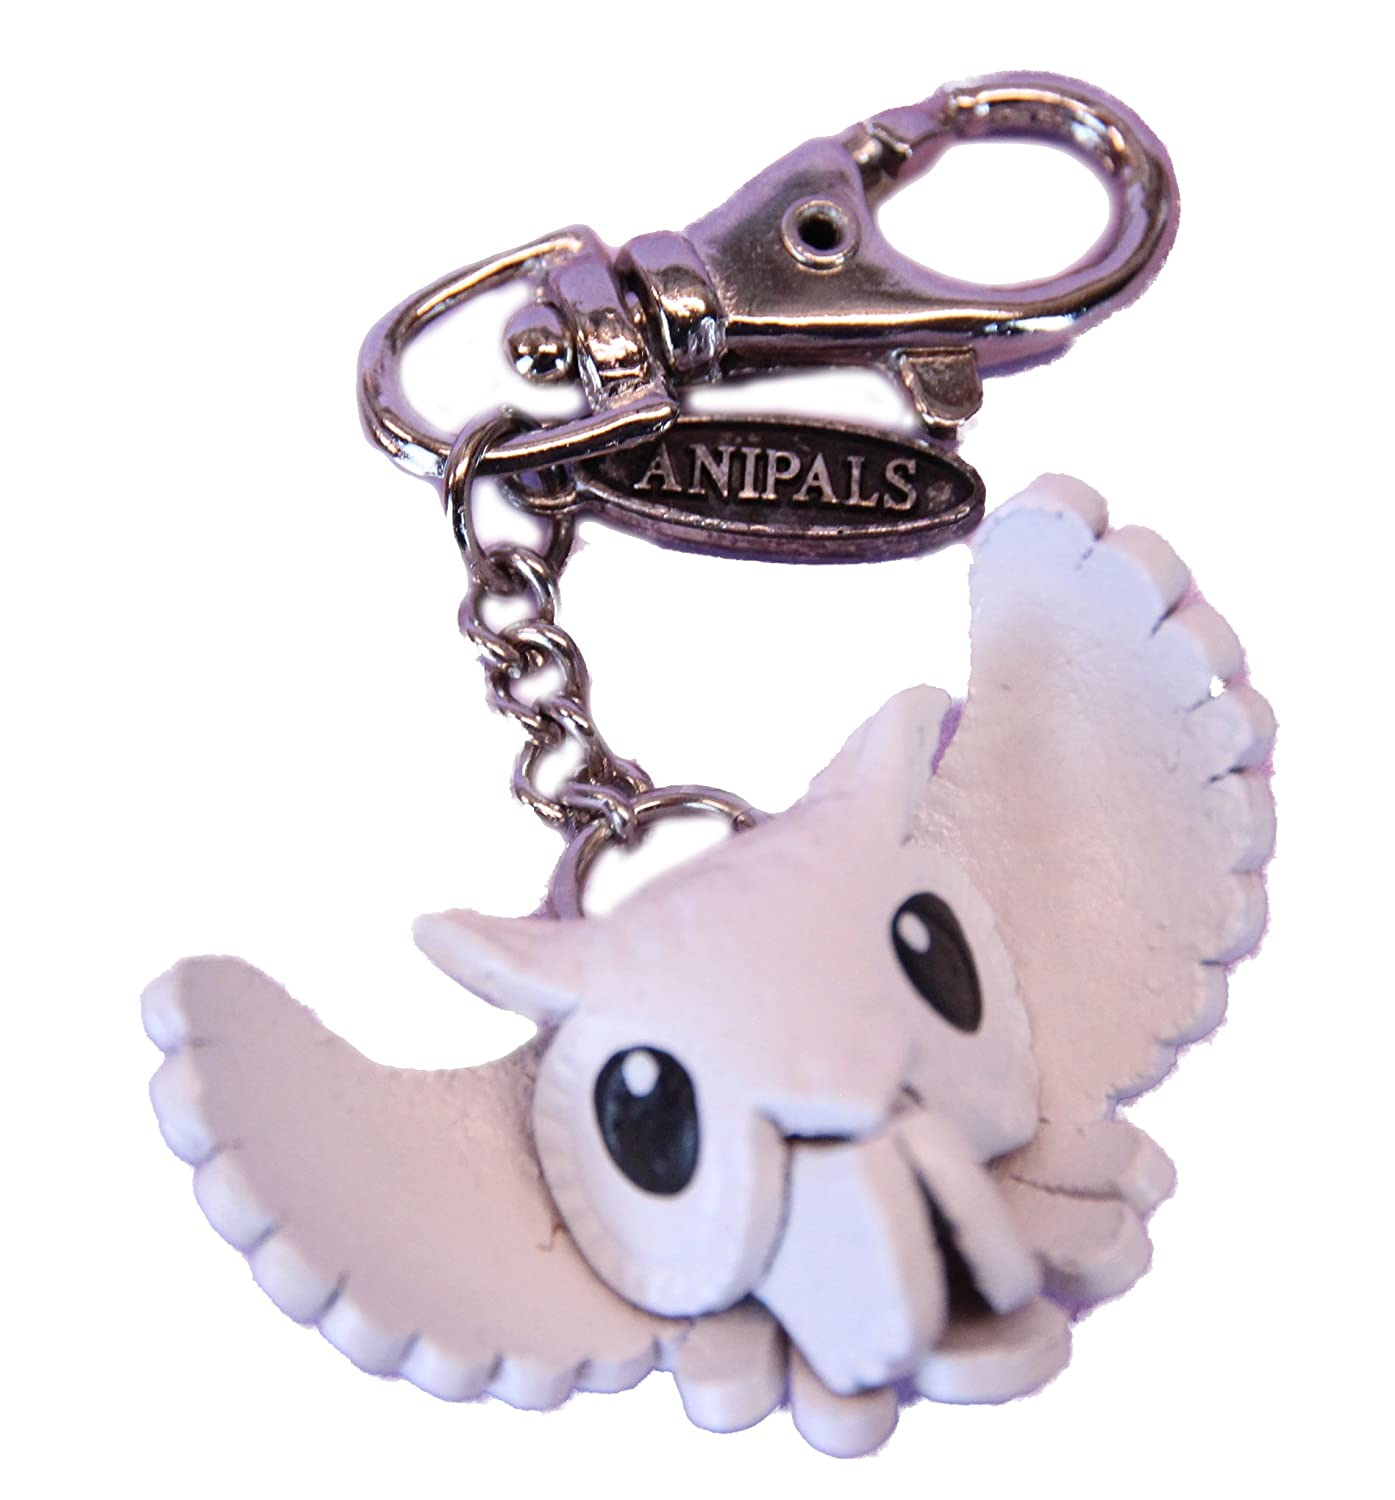 Purse Charm Leather White Owl Chain Fob Animal Gifts Clasp